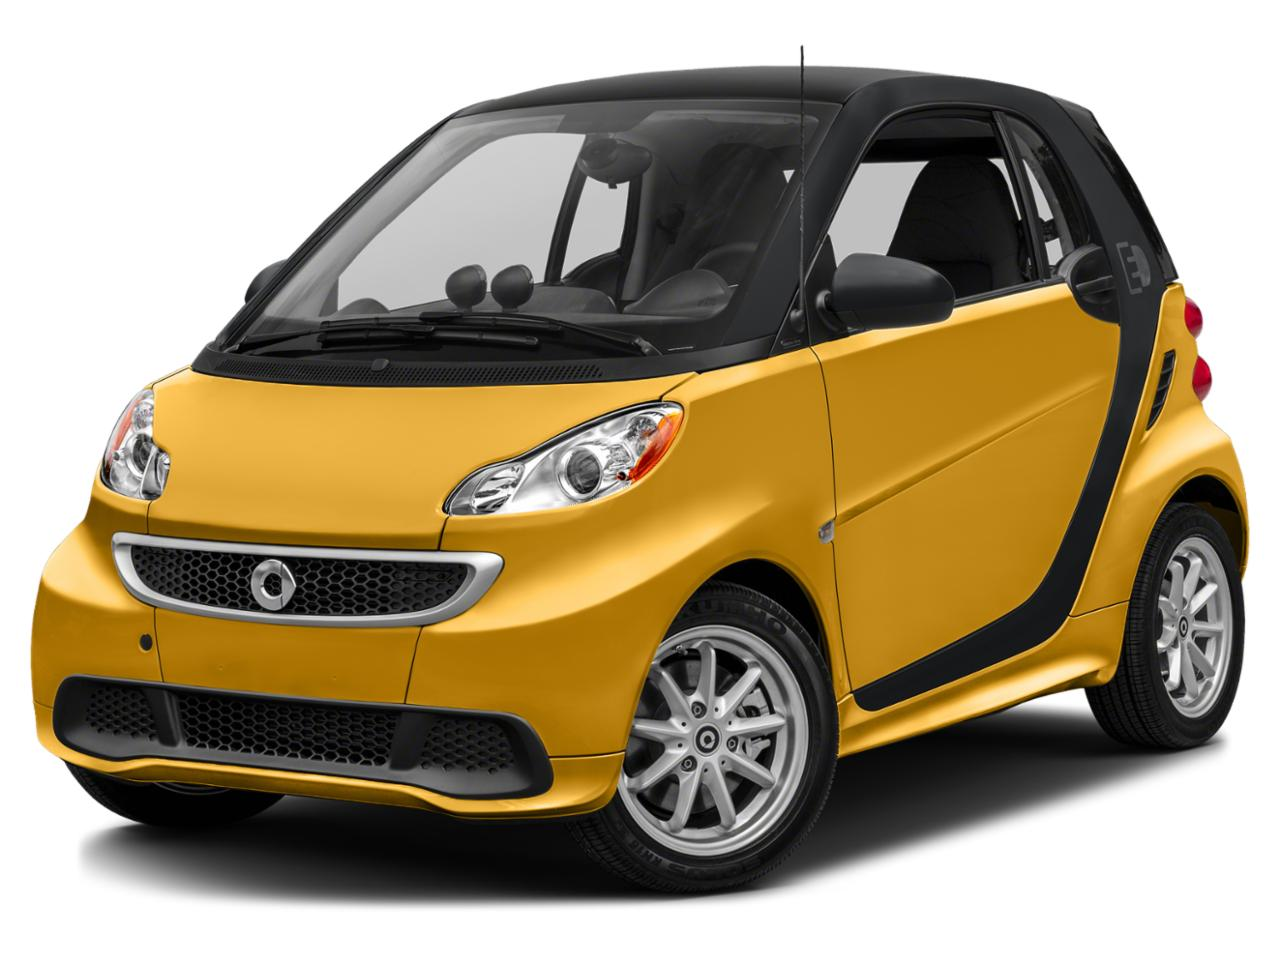 2017 smart fortwo electric drive Vehicle Photo in Coconut Creek, FL 33073